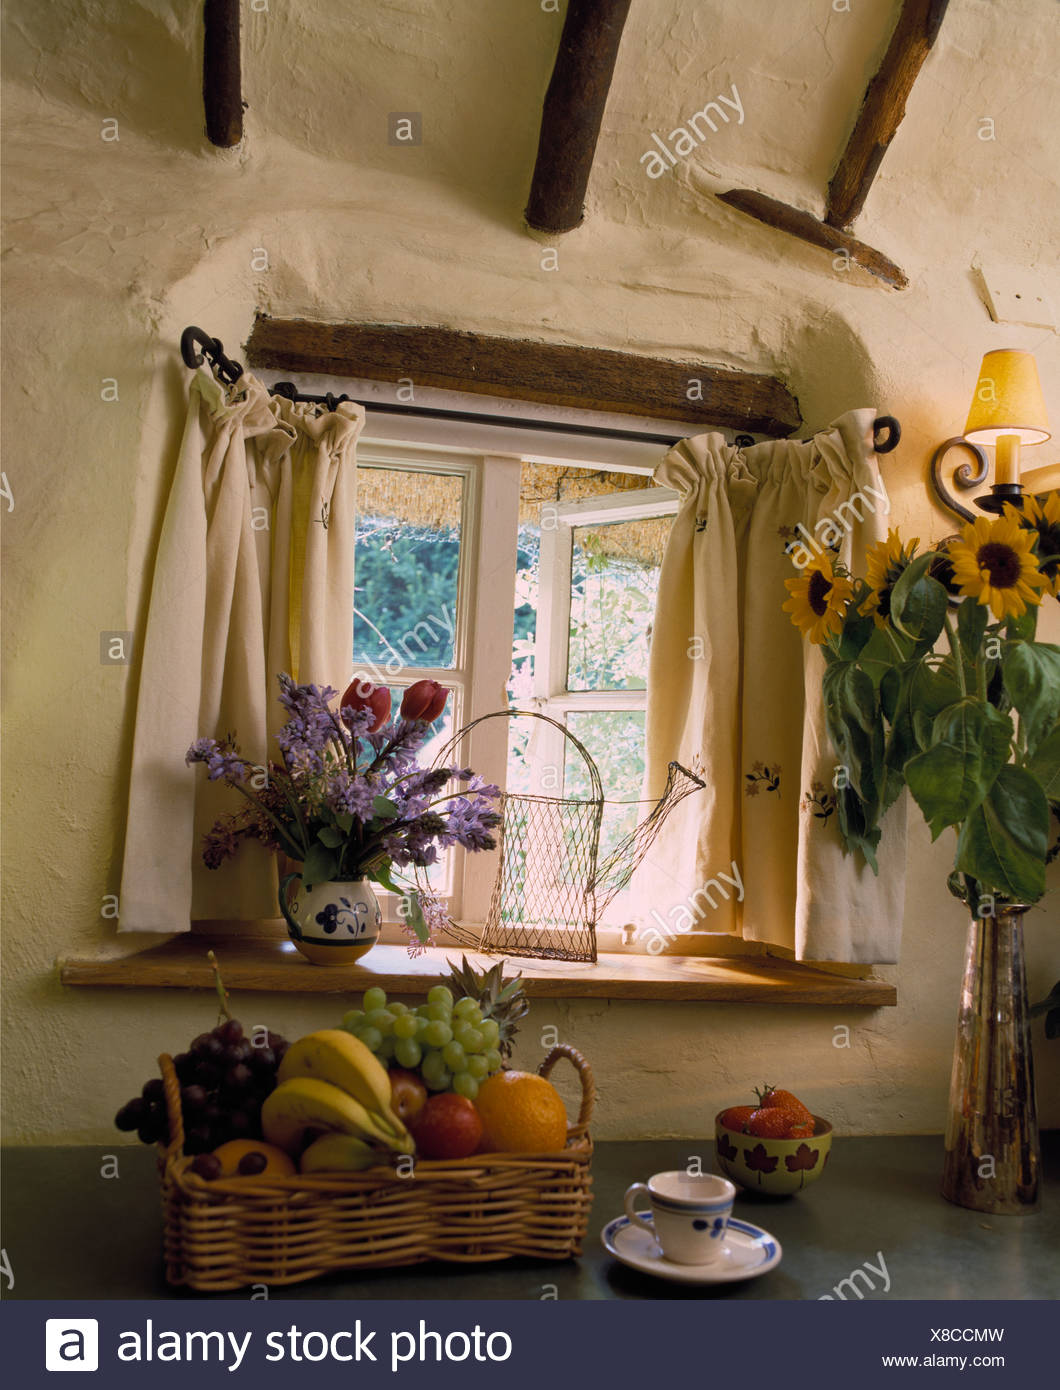 Small window with cream curtains on portiere rods above ...